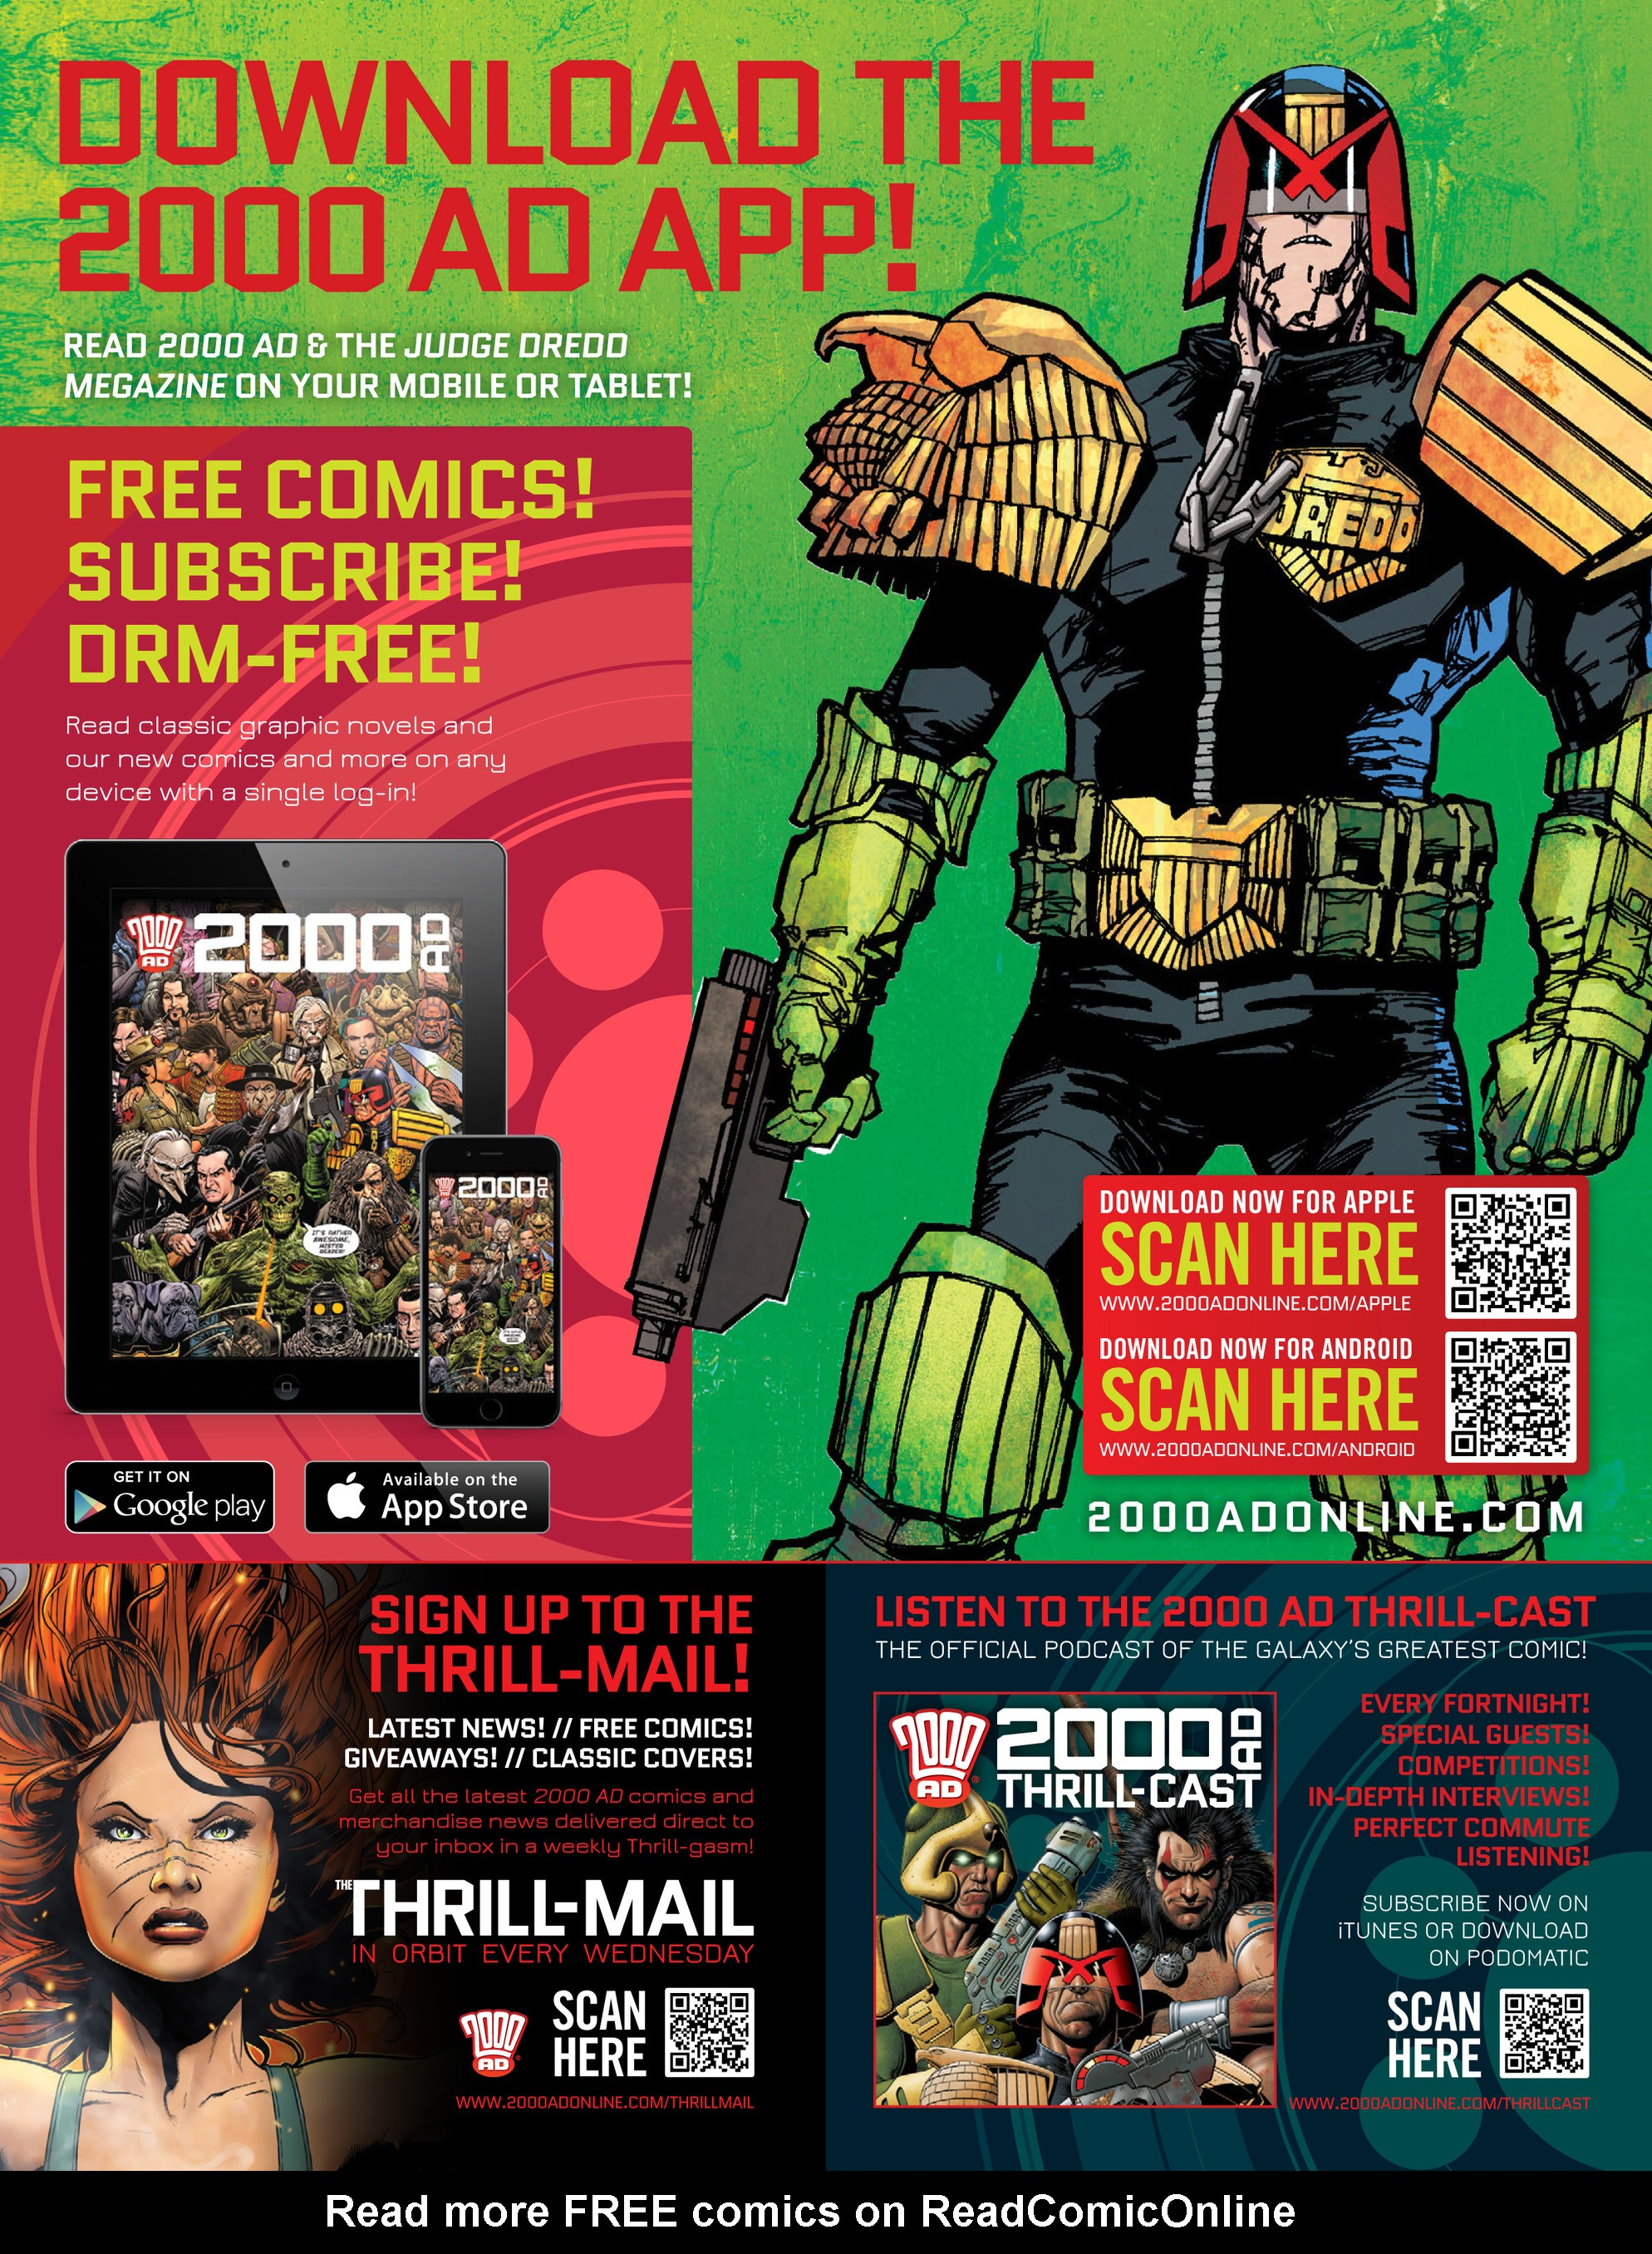 Read online 2000 AD comic -  Issue #2011 - 27